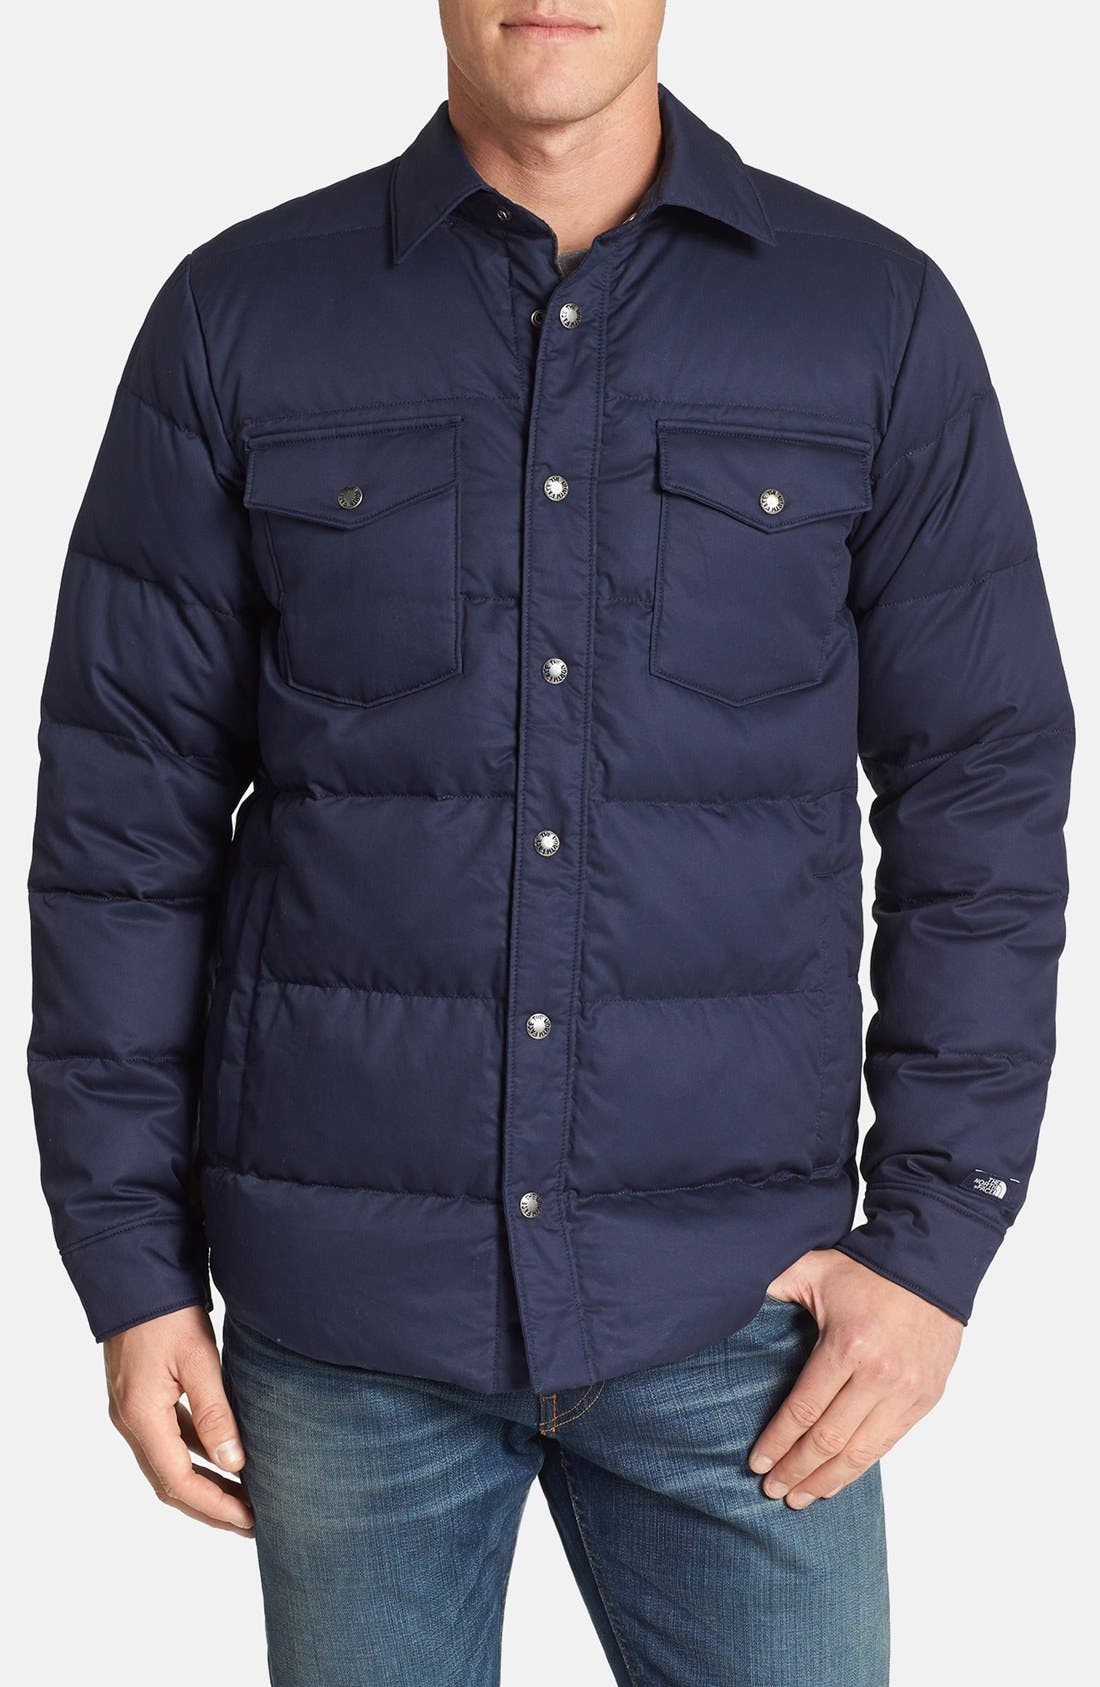 Main Image - The North Face 'Cook' Down Shirt Jacket